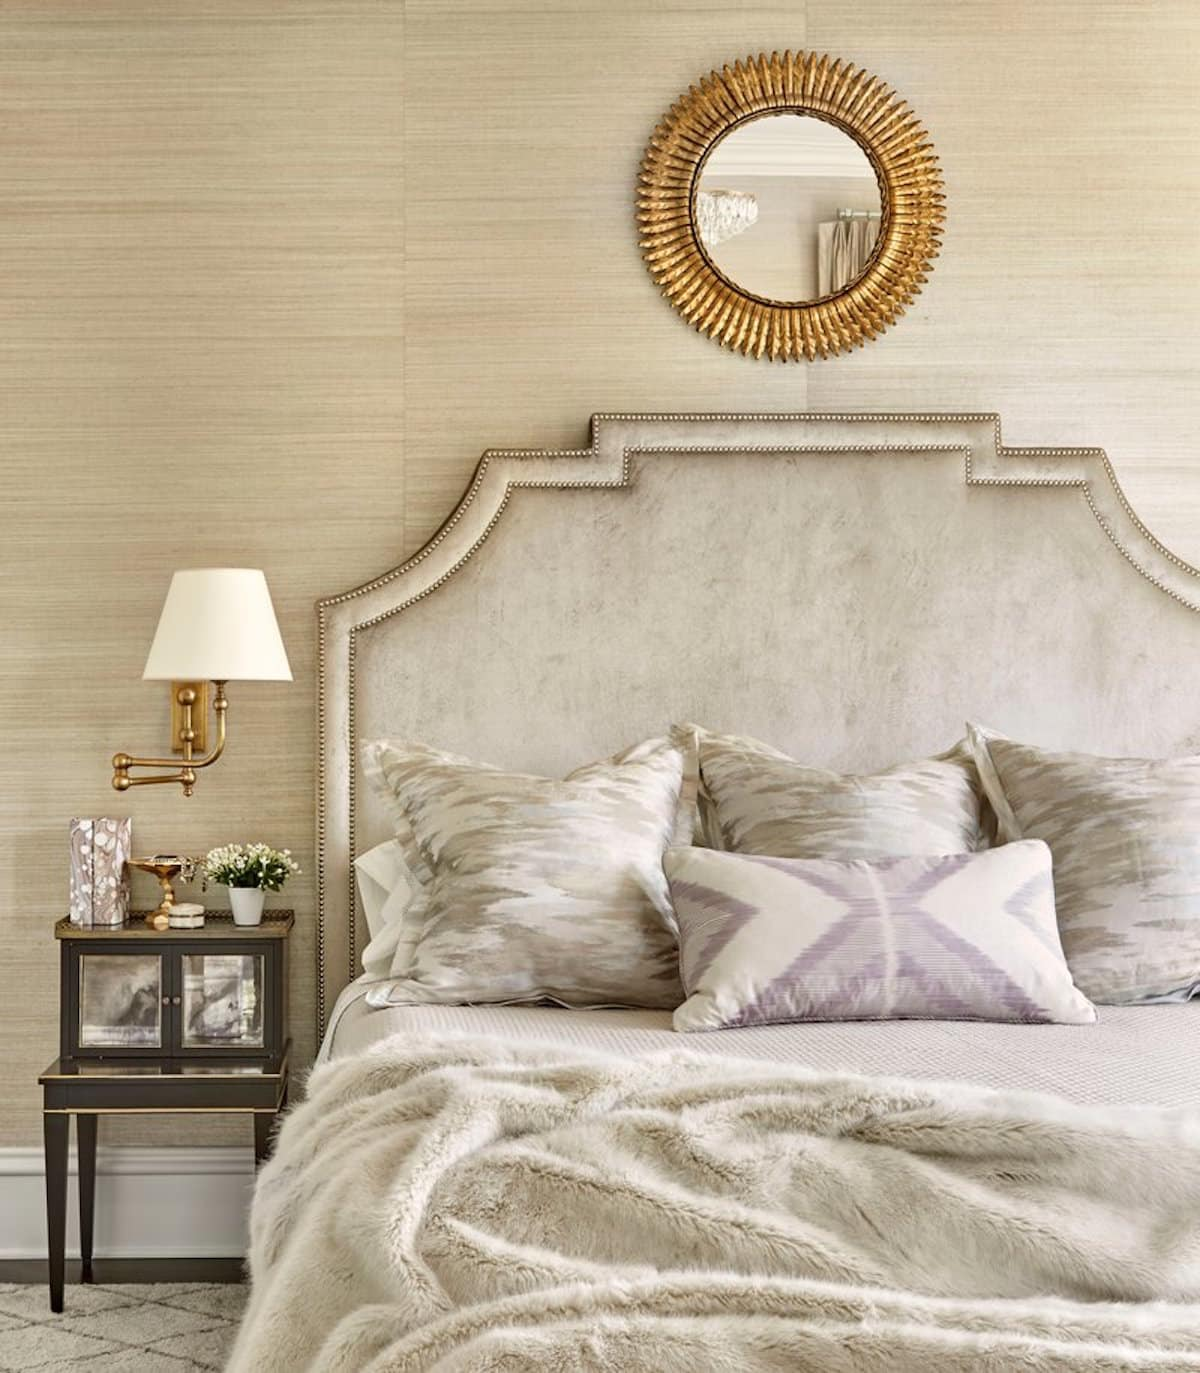 A Chicago bedroom by Summer Thornton.